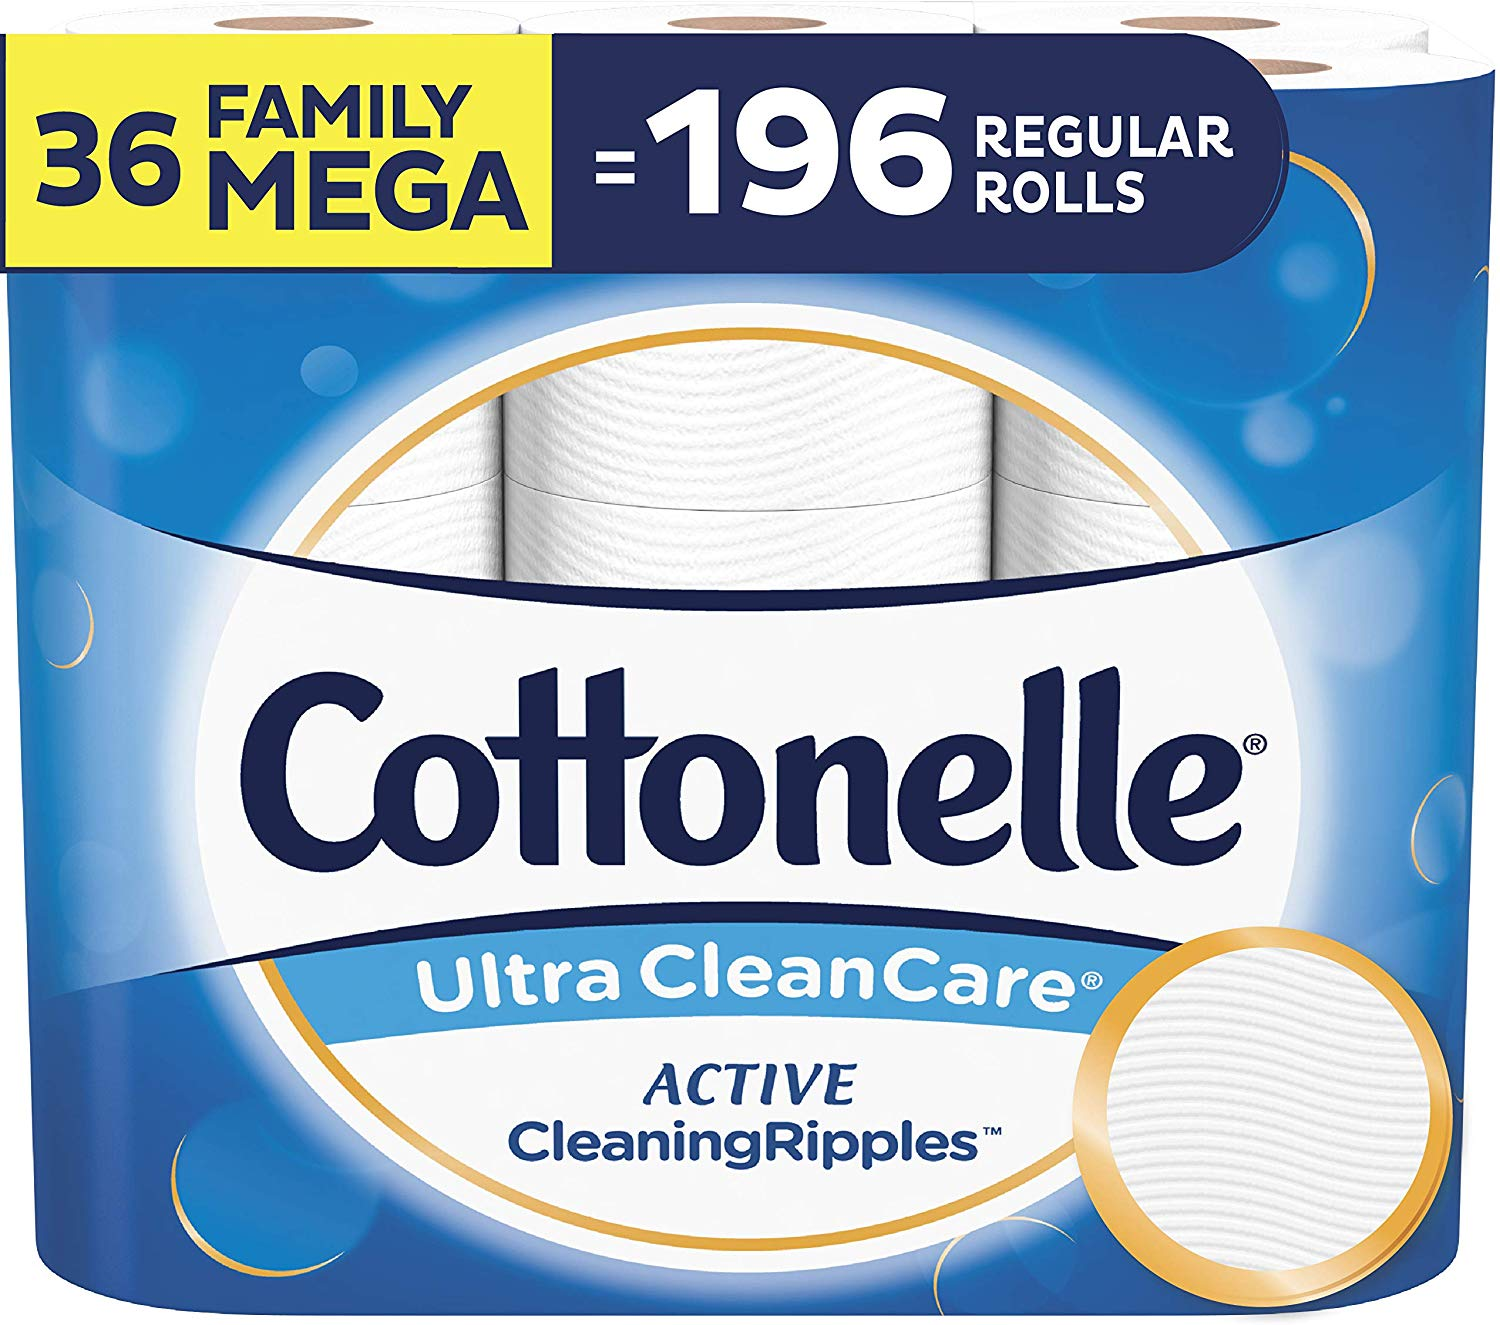 Cottonelle Ultra CleanCare | Biodegradable Toilet Papers